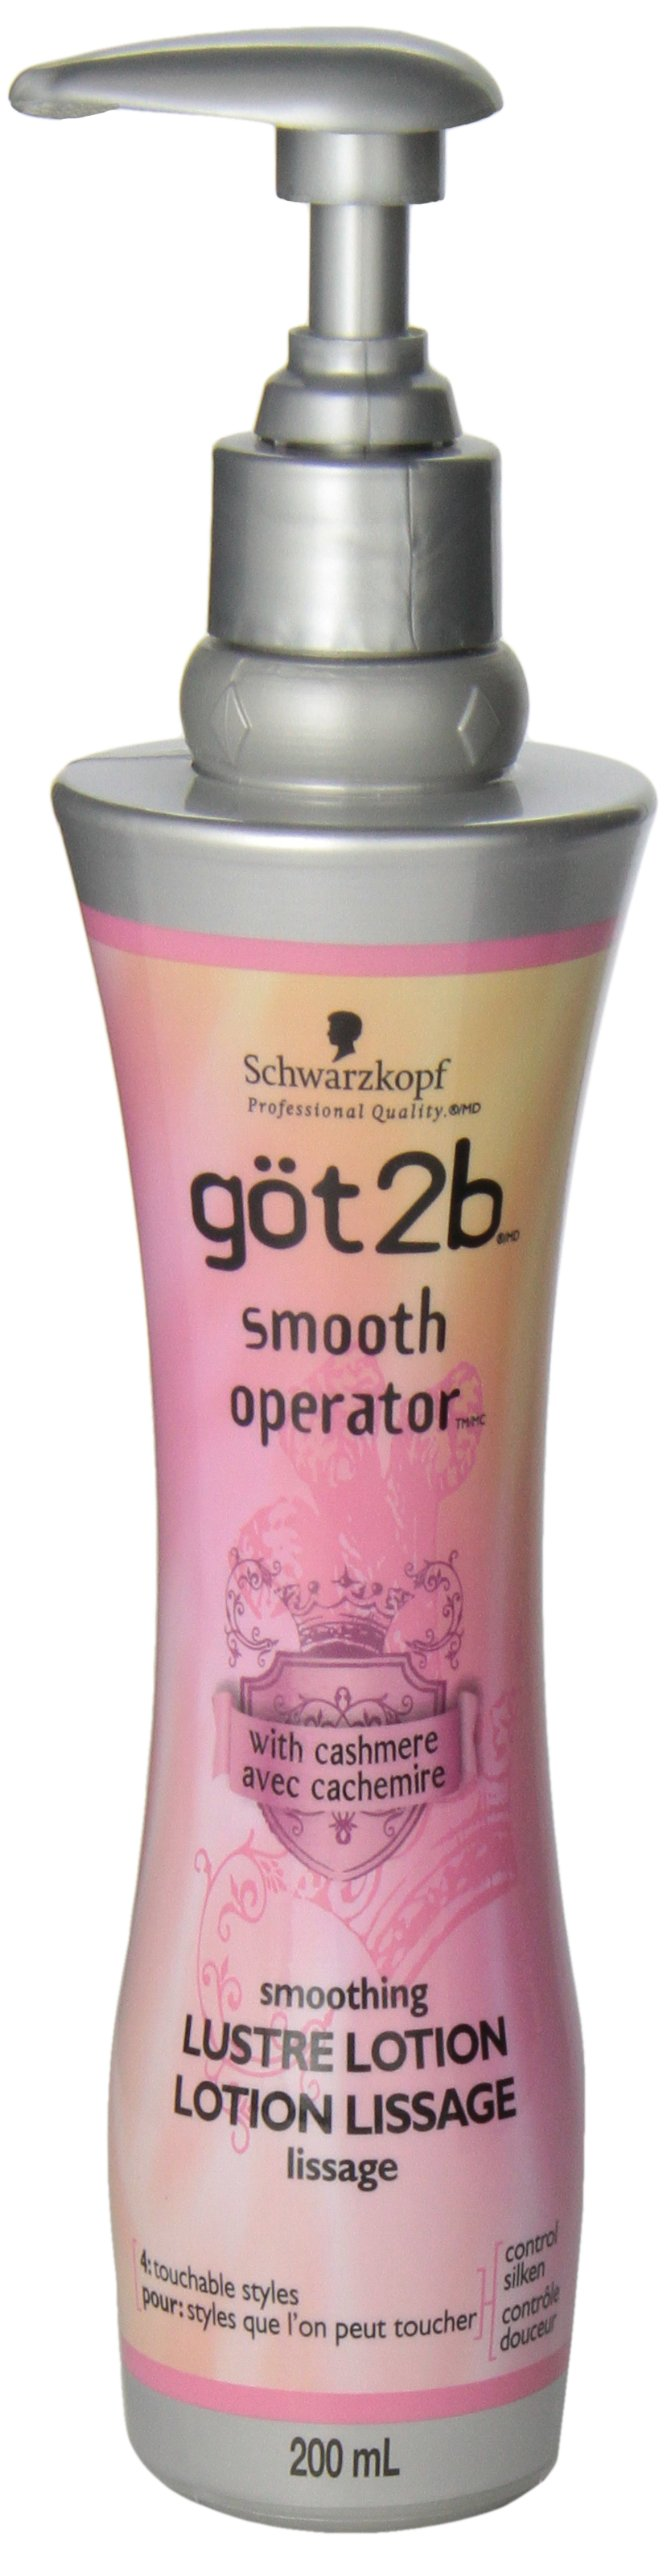 got2b Smooth Operator Leave In Conditioner Luxe Lotion 6.80 oz ( Pack of 3) by Got2B